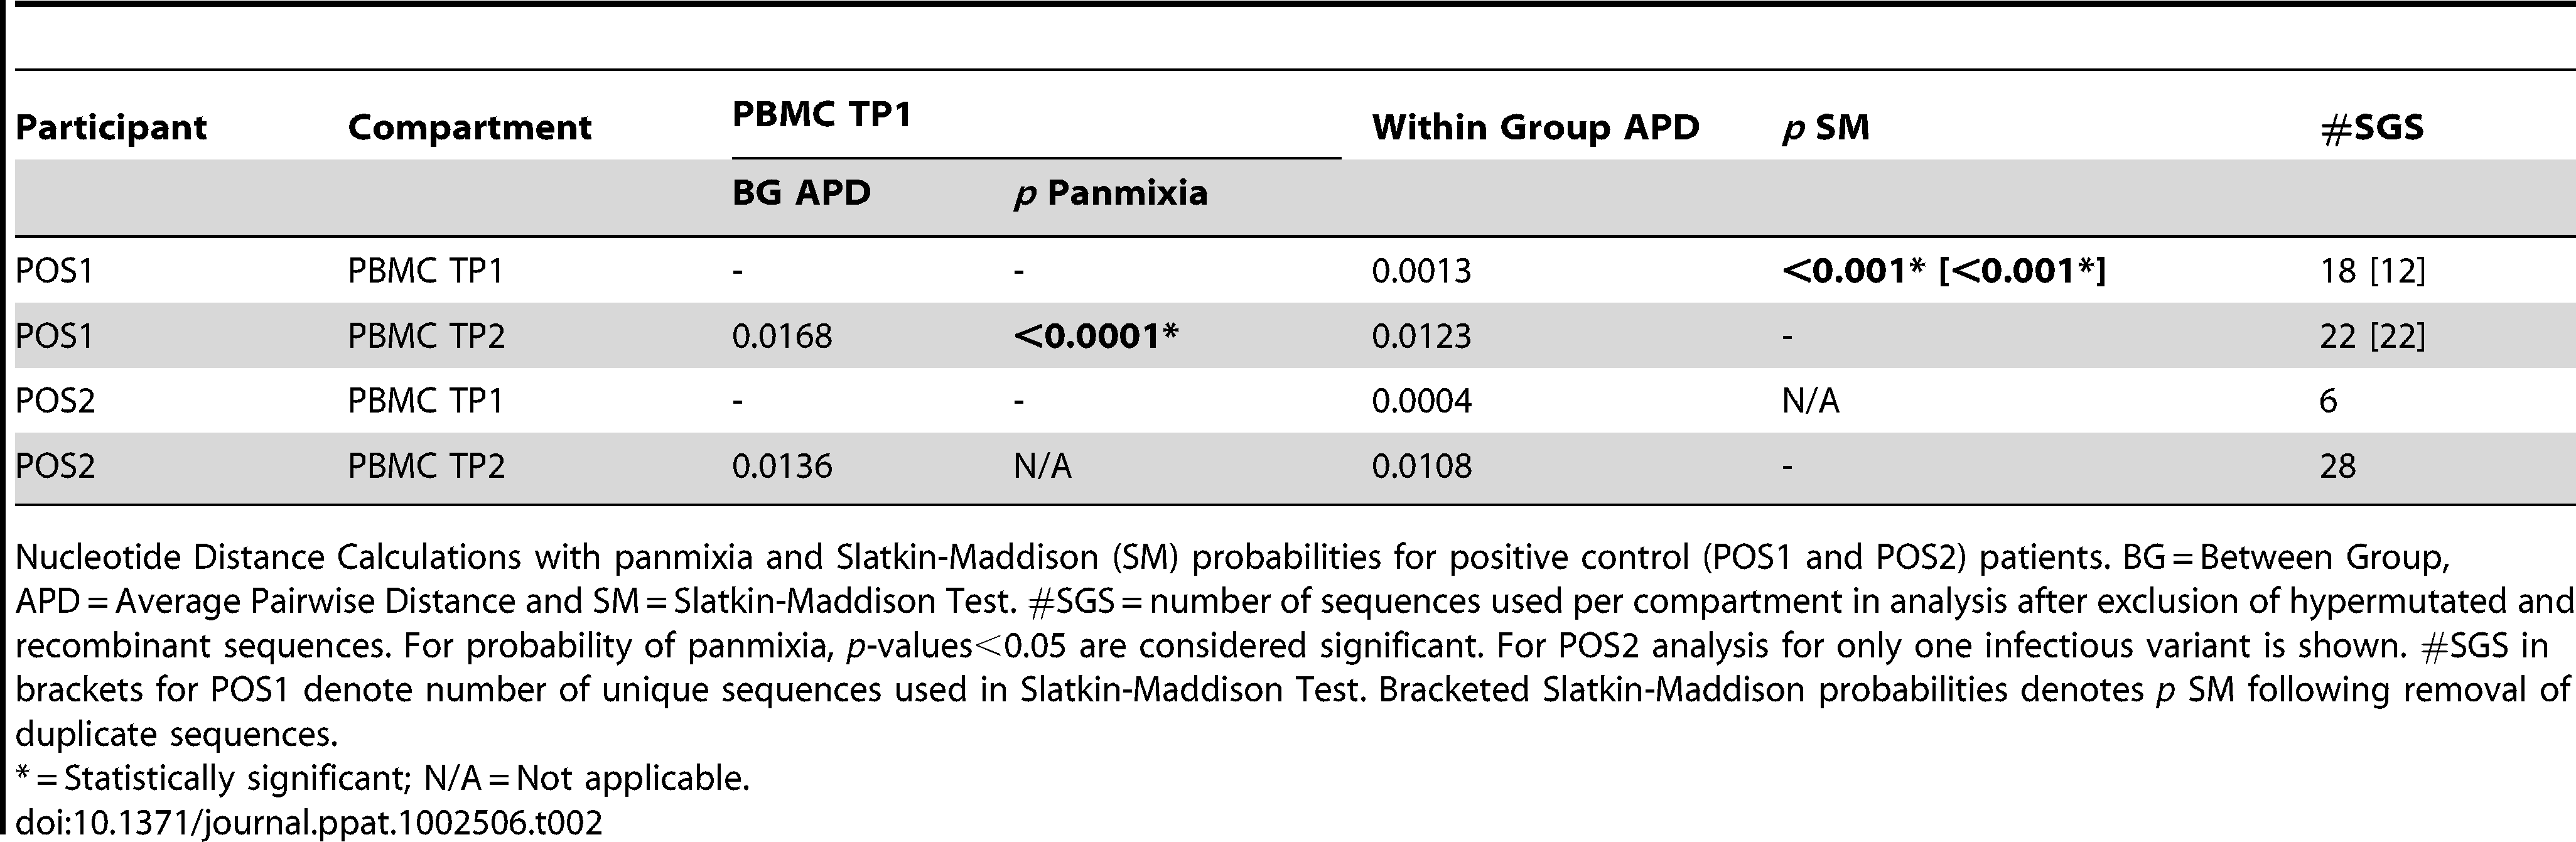 Nucleotide distance calculations with panmixia and Slatkin-Maddison (SM) probabilities-positive controls.